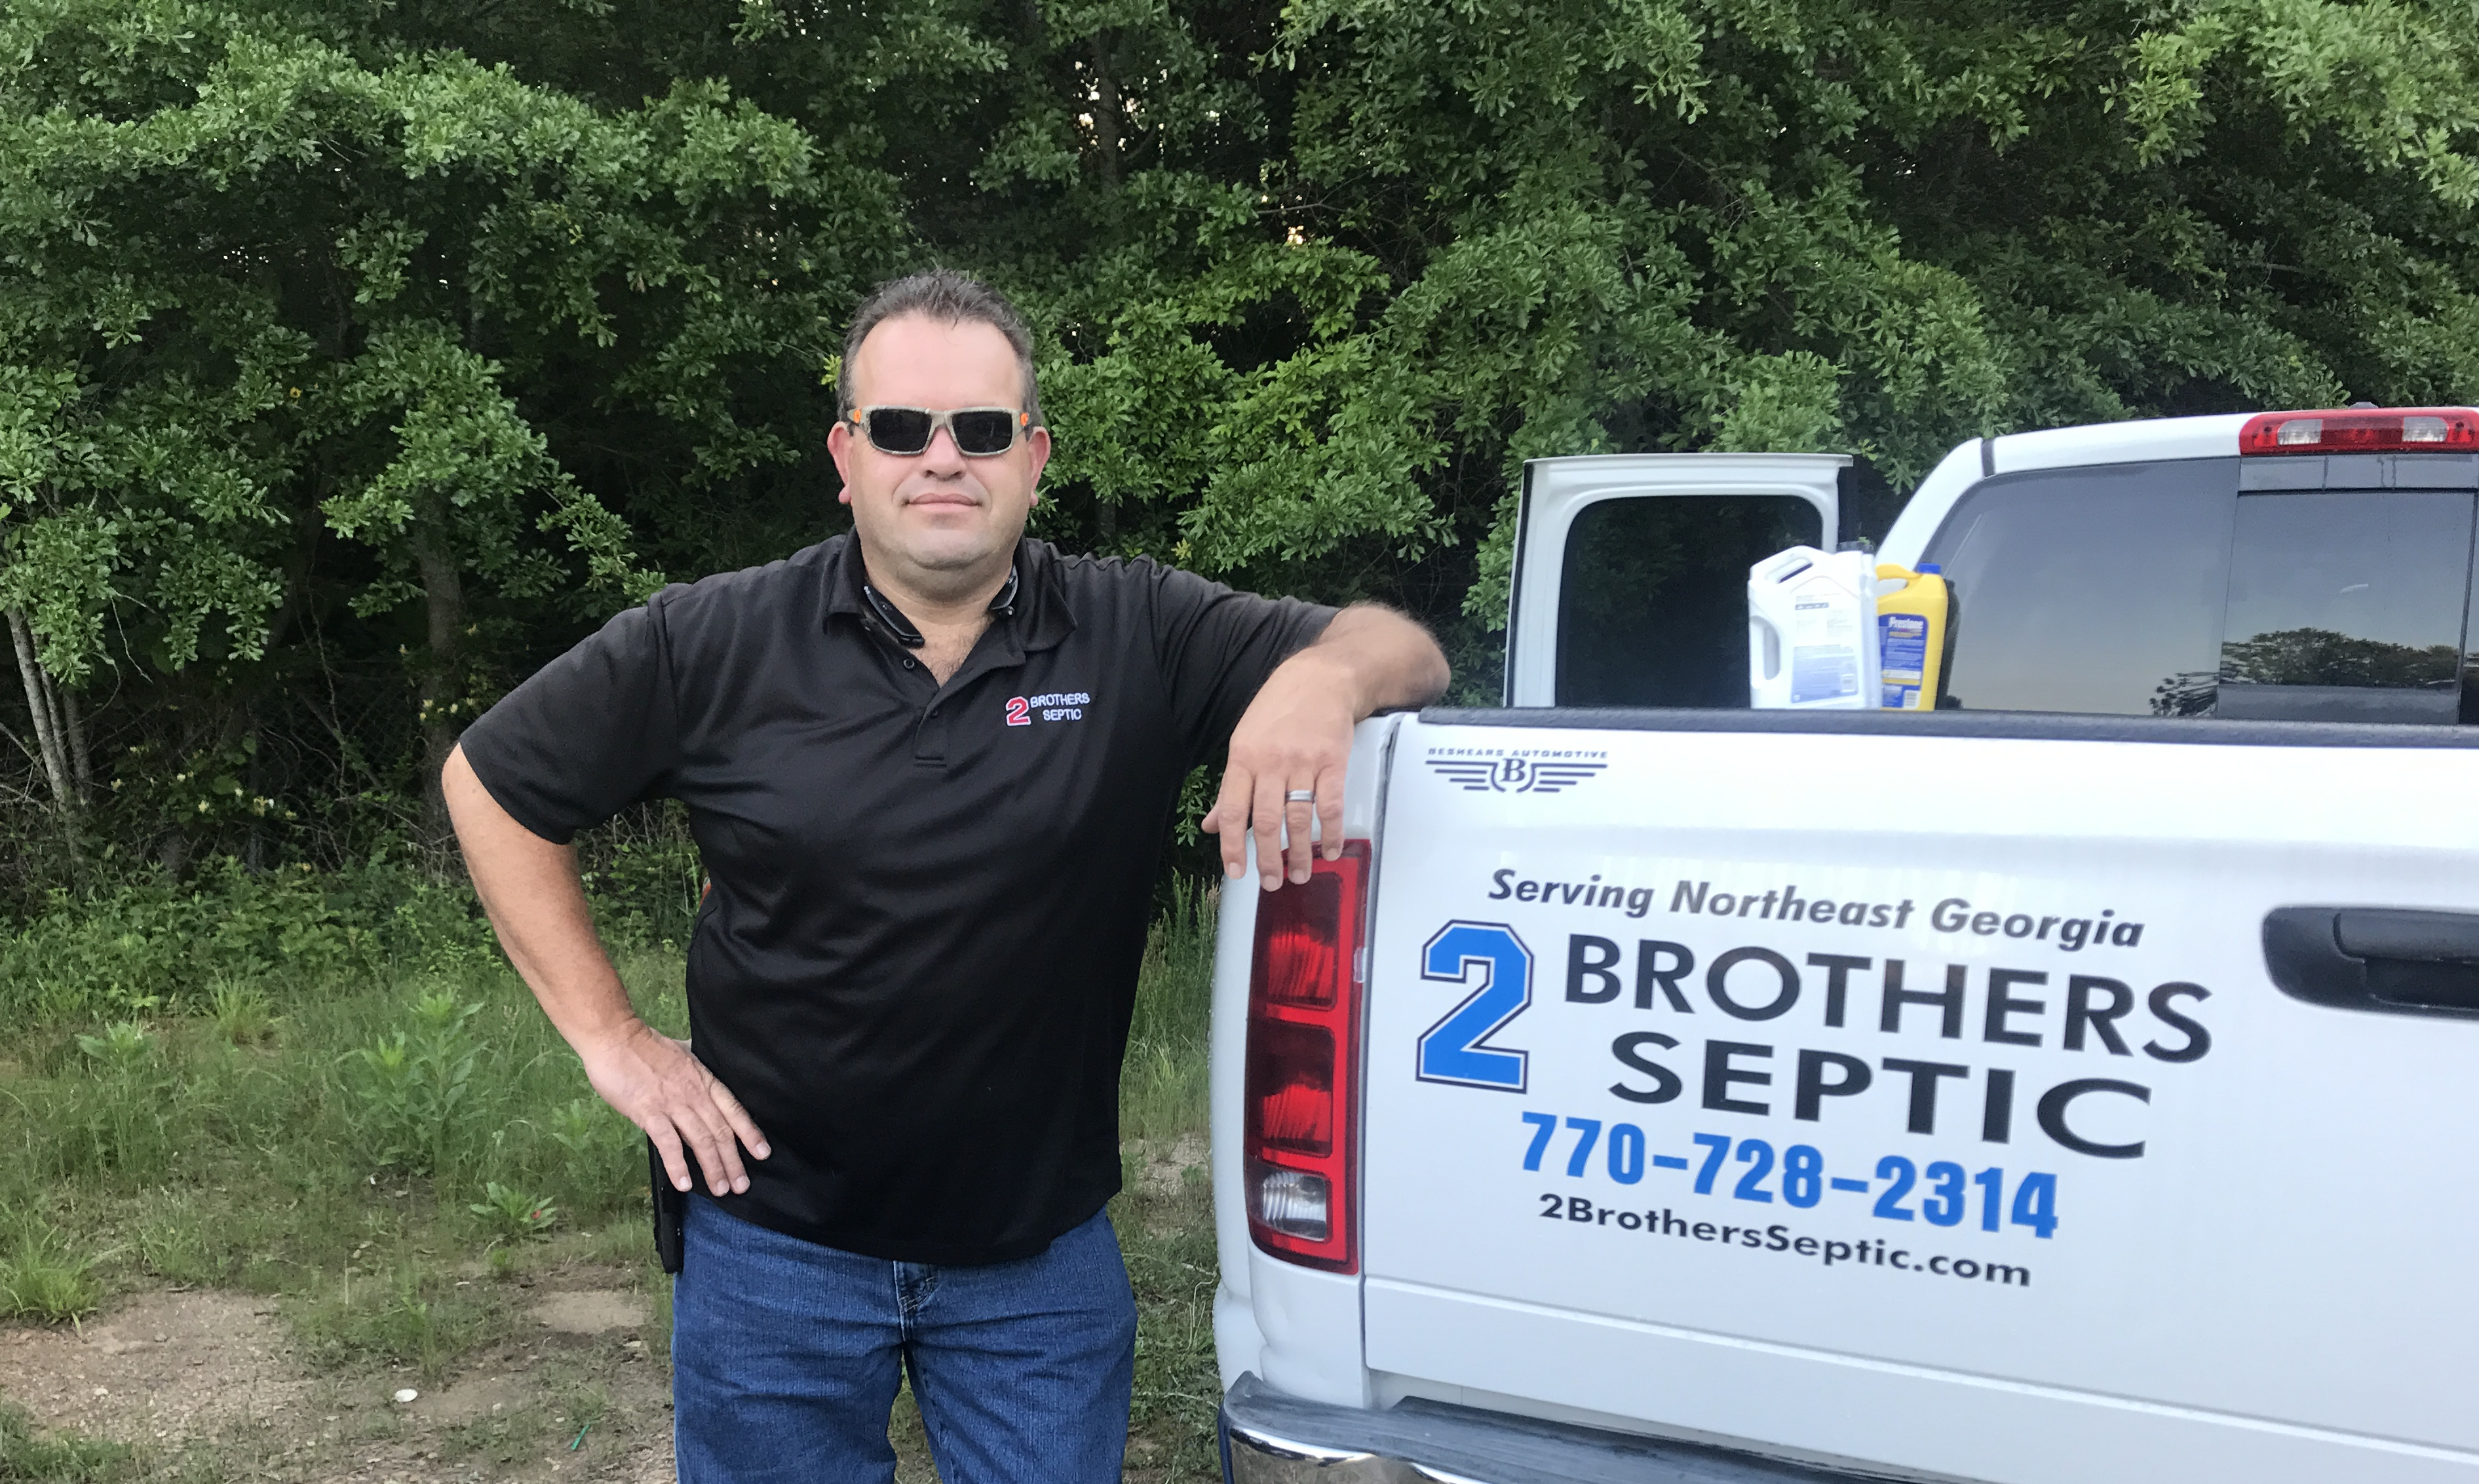 2 Brothers Septic owner in Braselton